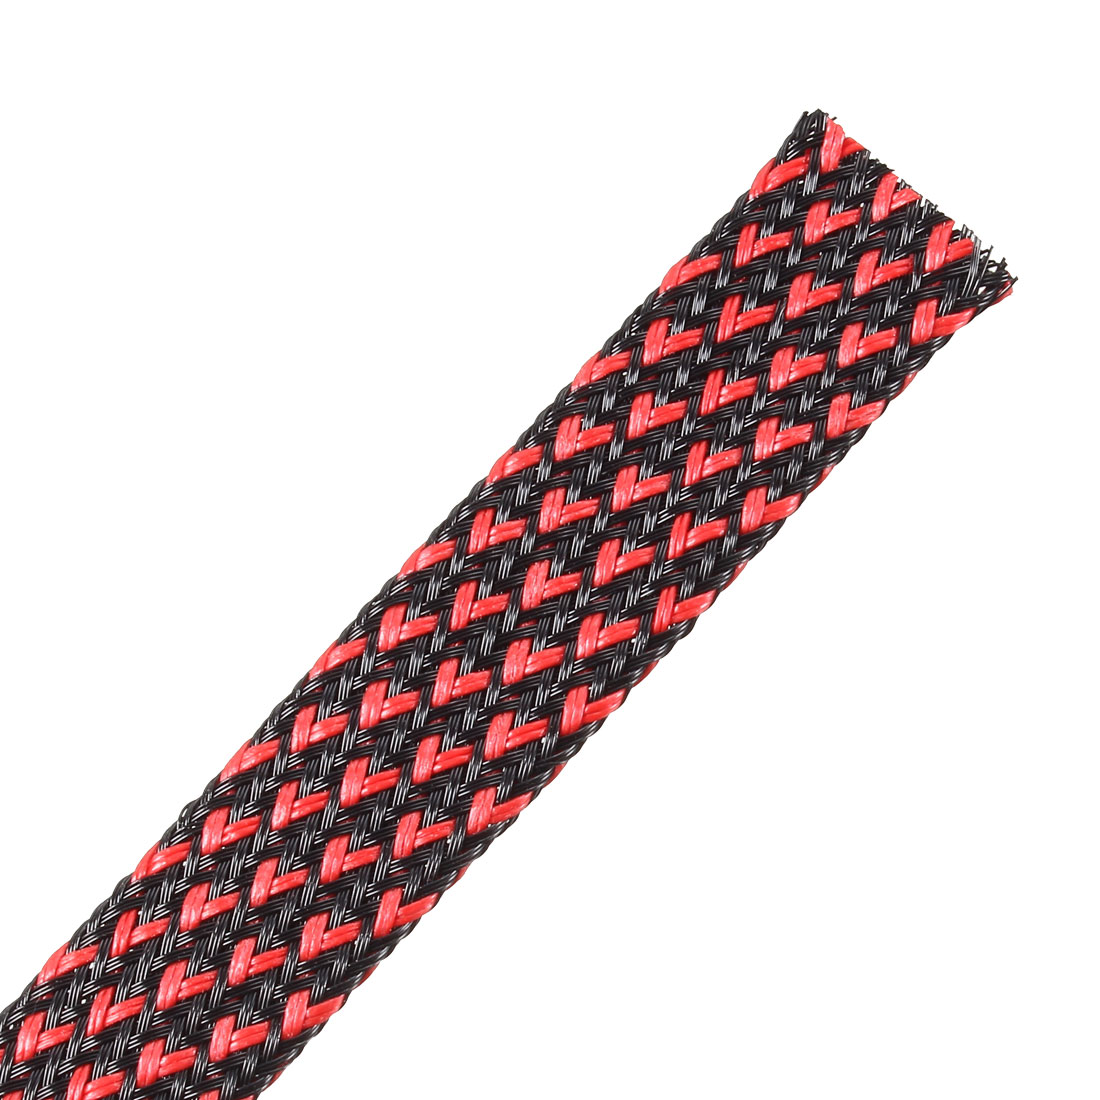 PET Expandable Cord Protector, 10Ft-16mm Wire Loom Cable Sleeve Black and Red